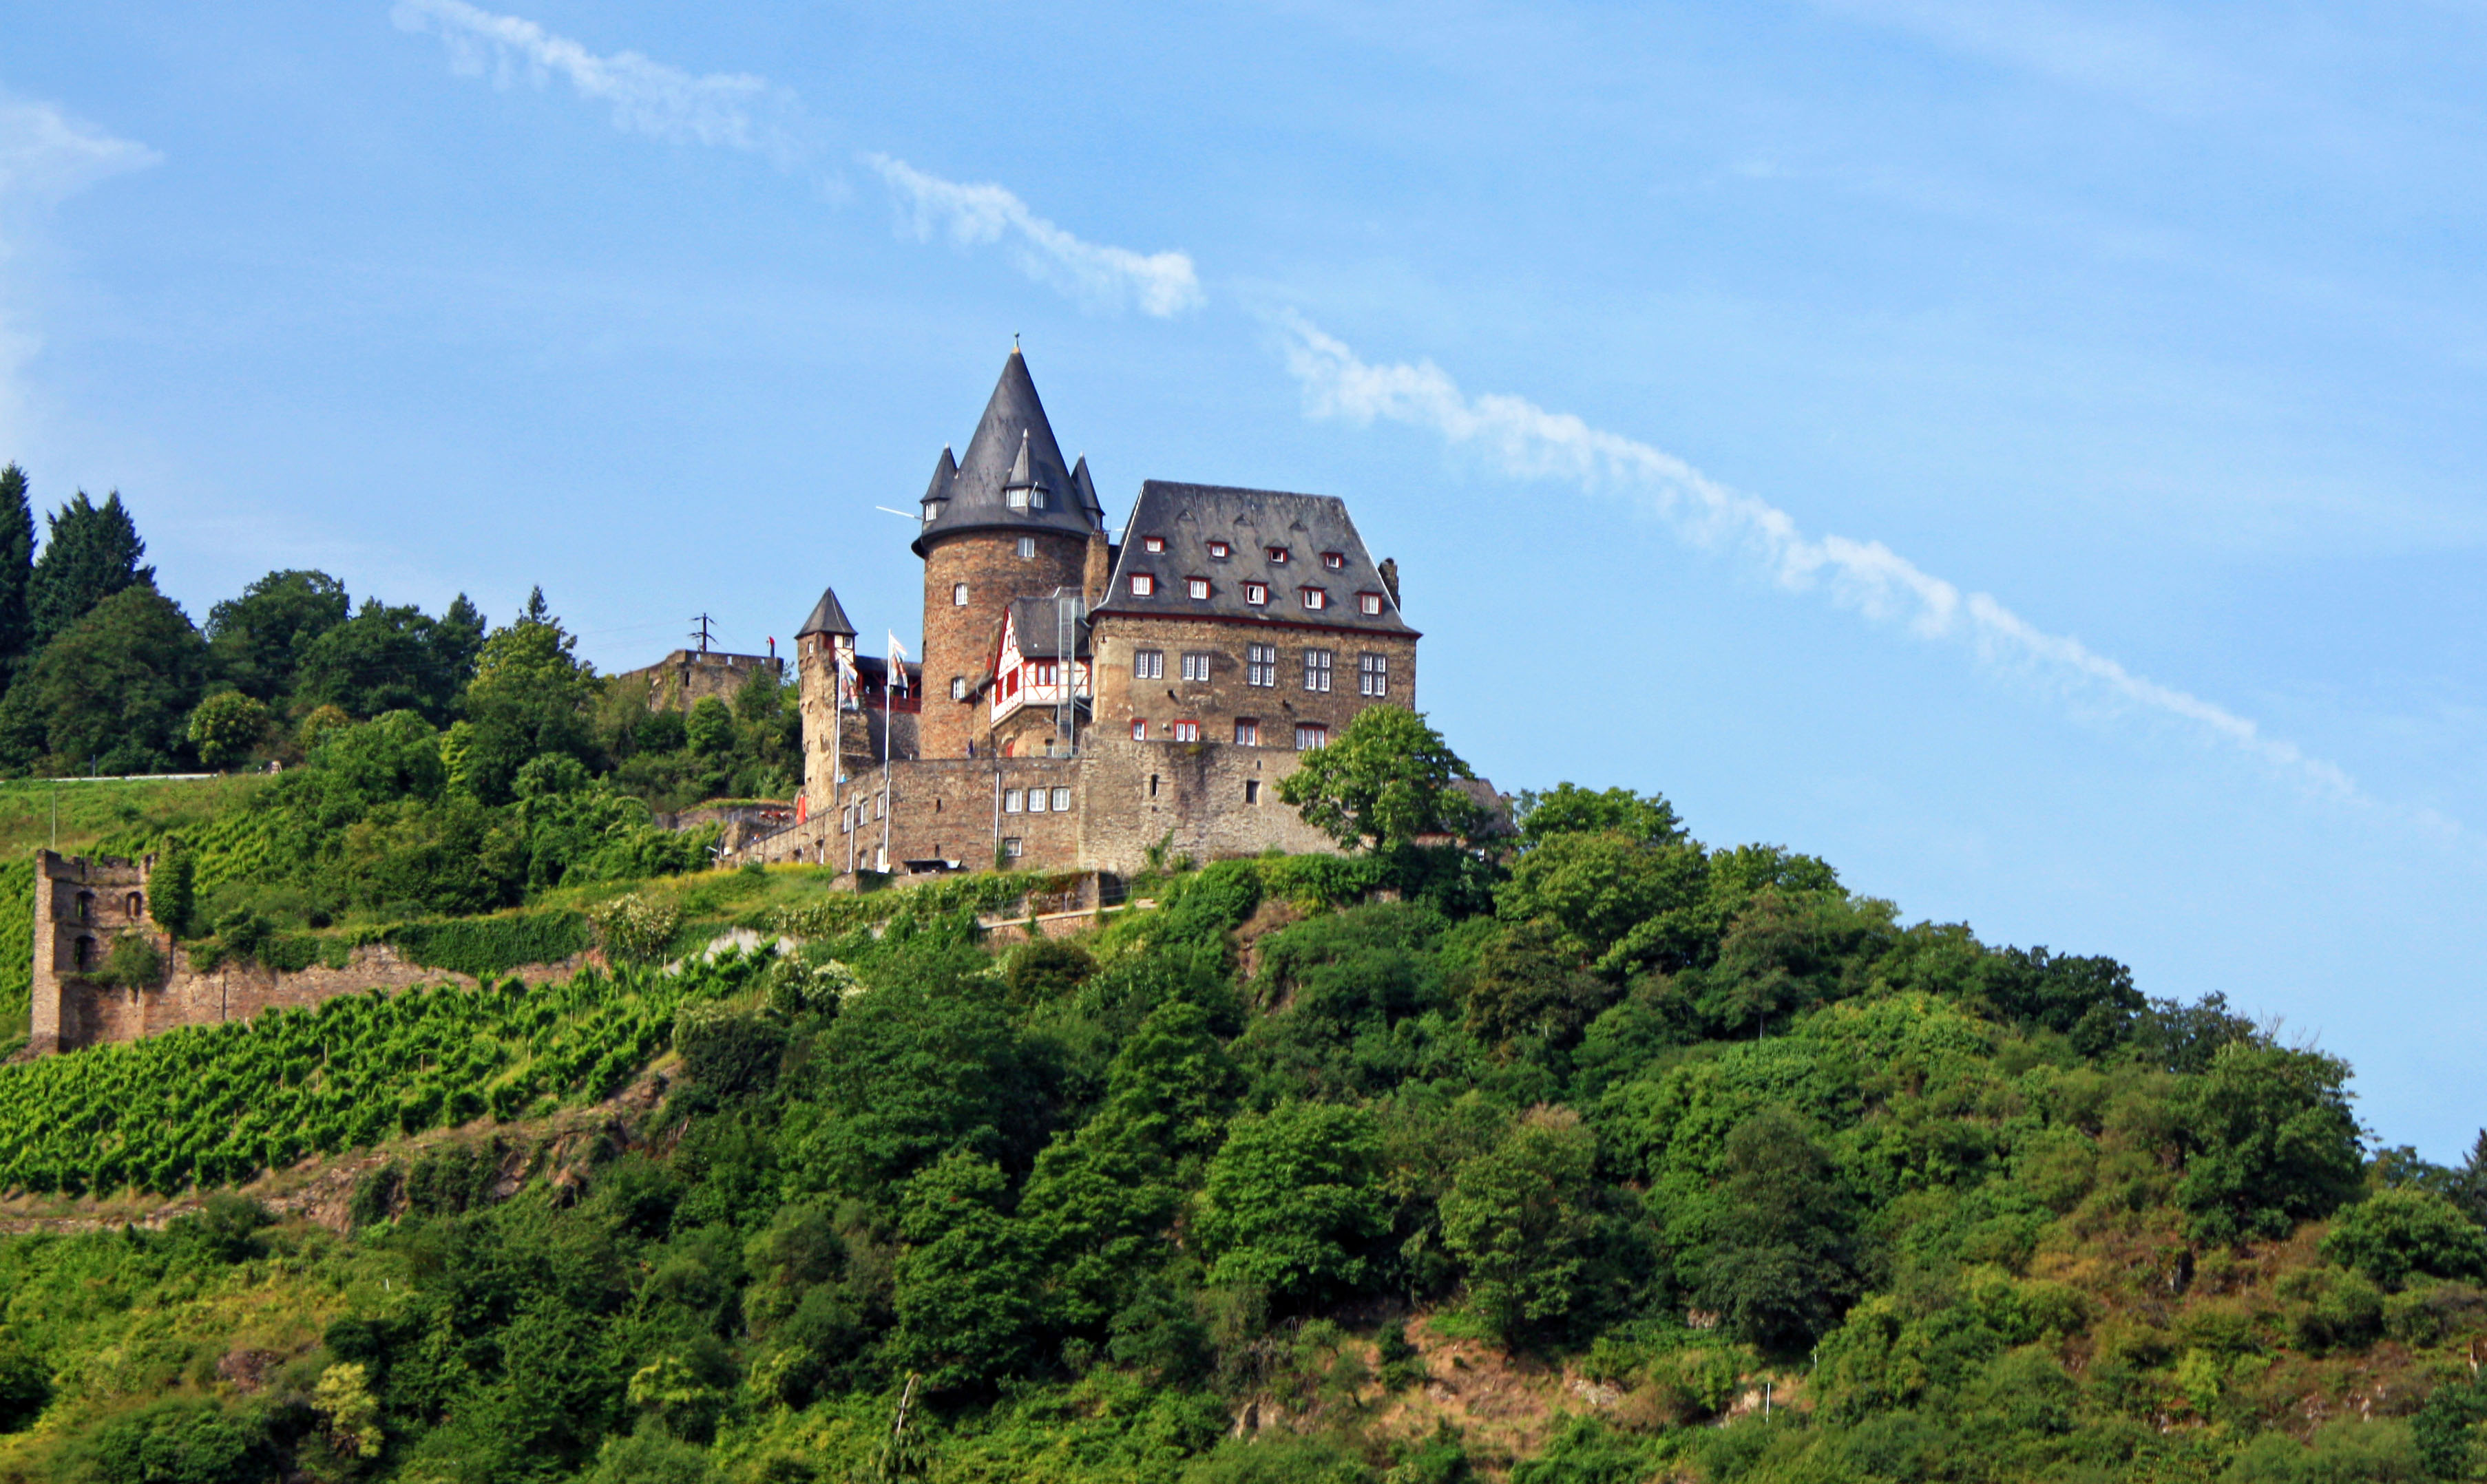 Stahleck Castle towering above the Rhine River.